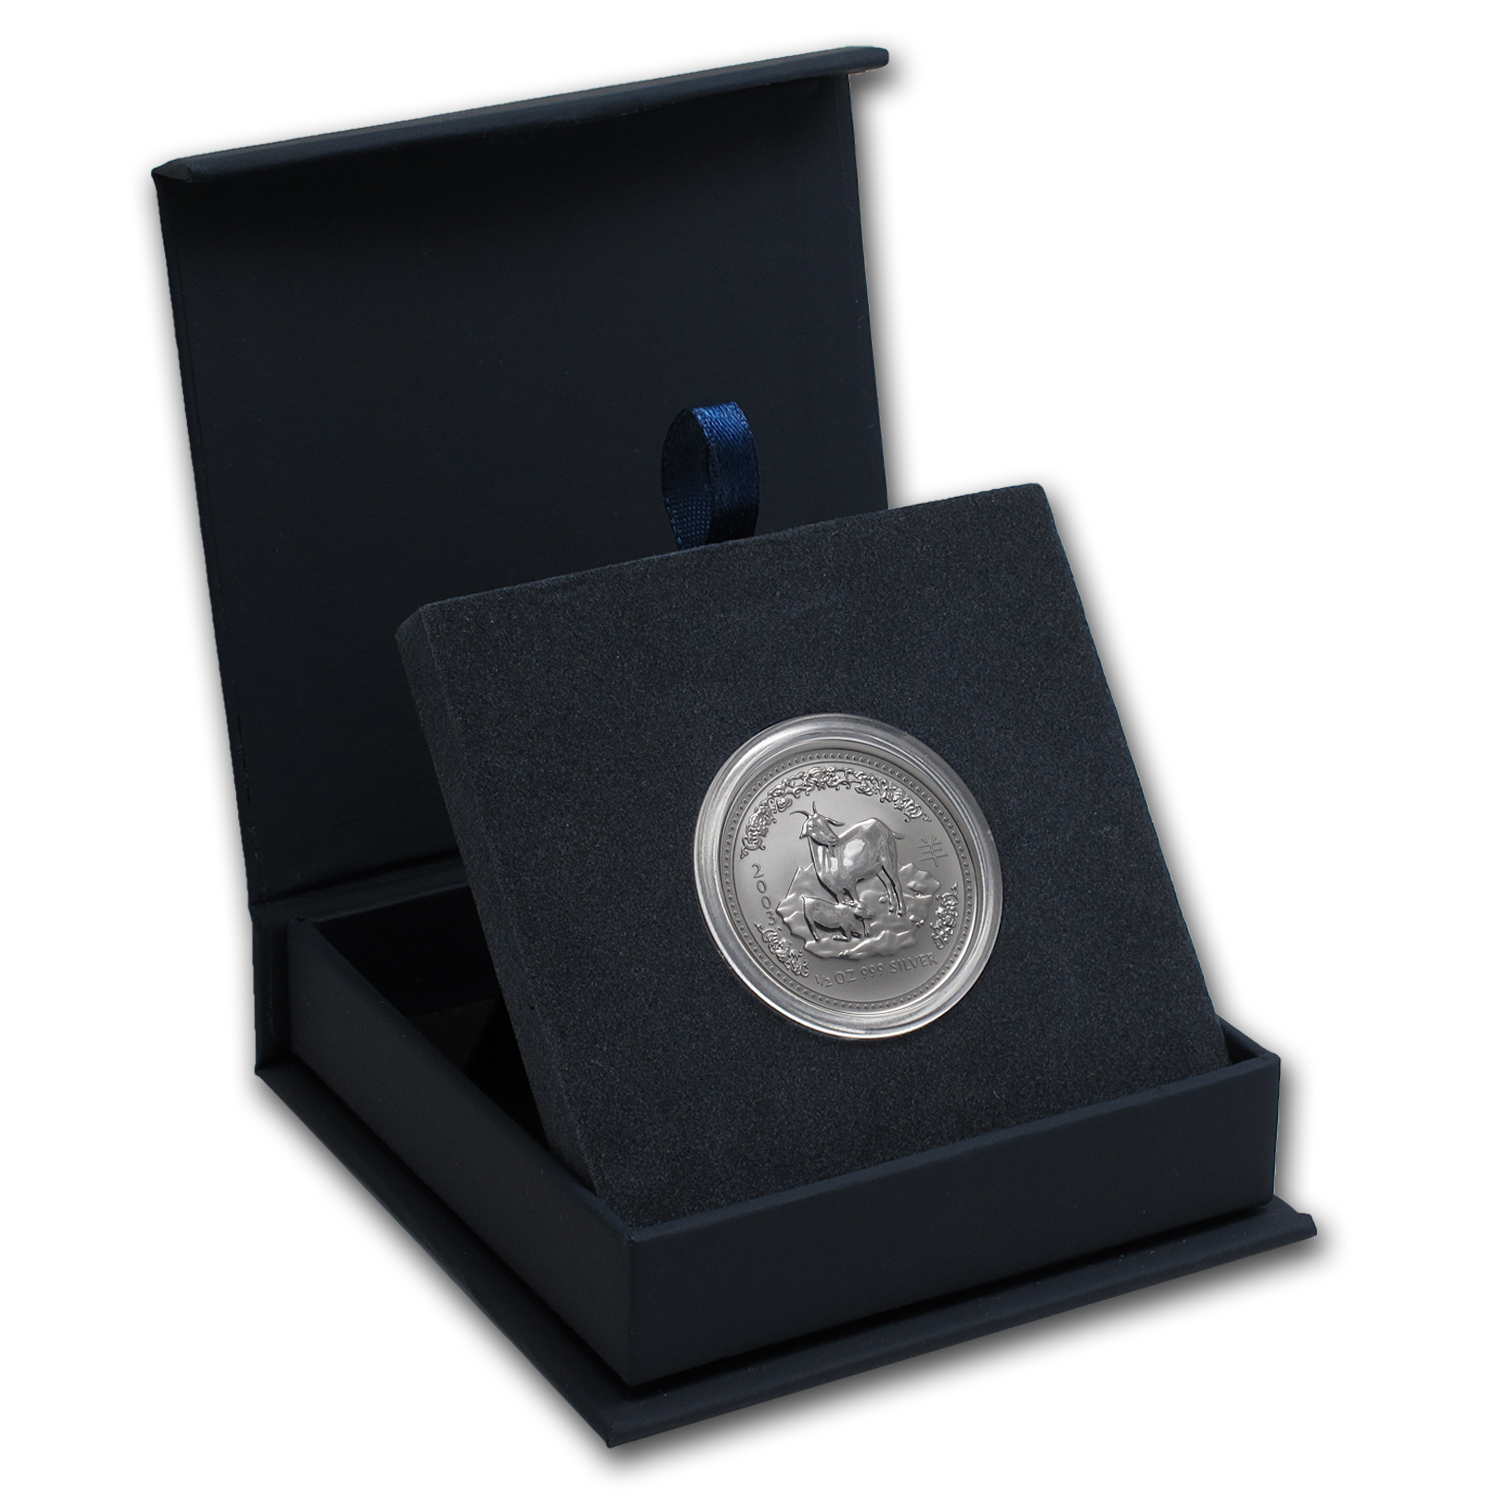 APMEX Gift Box - 1/2 oz Perth Mint Silver Coin Series 1